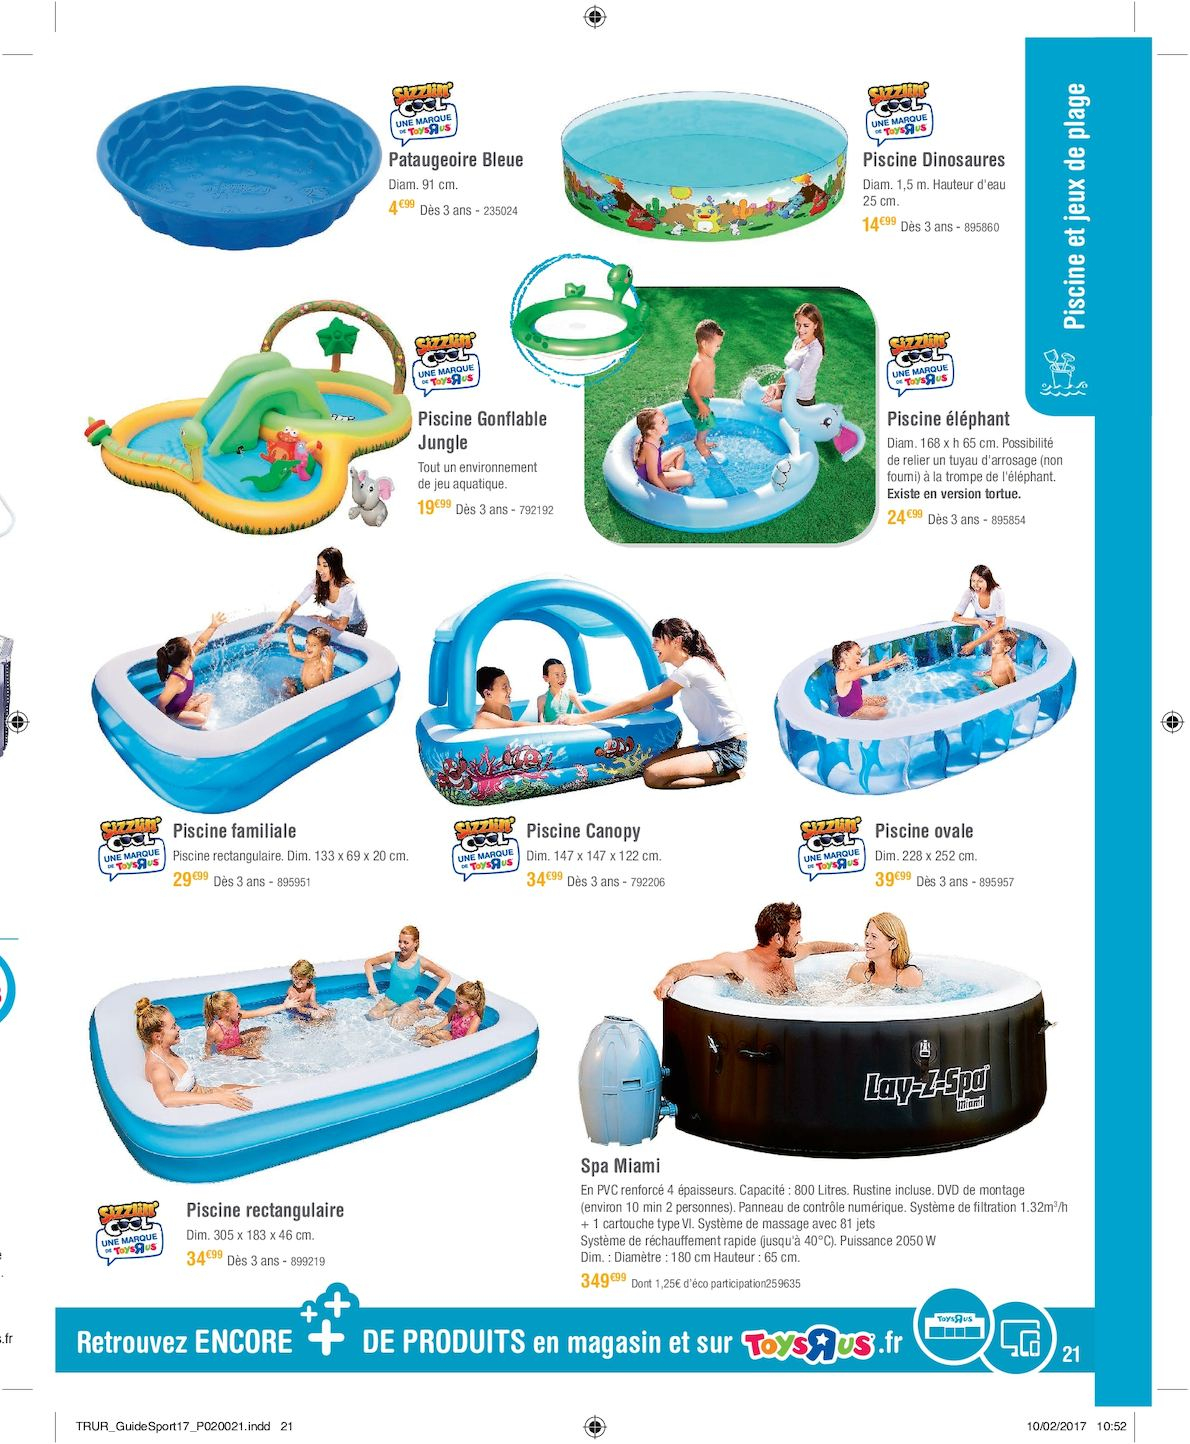 Toys'r'us Total Guide Plein Air 2017 - Calameo Downloader concernant Piscine A Balle Toysrus